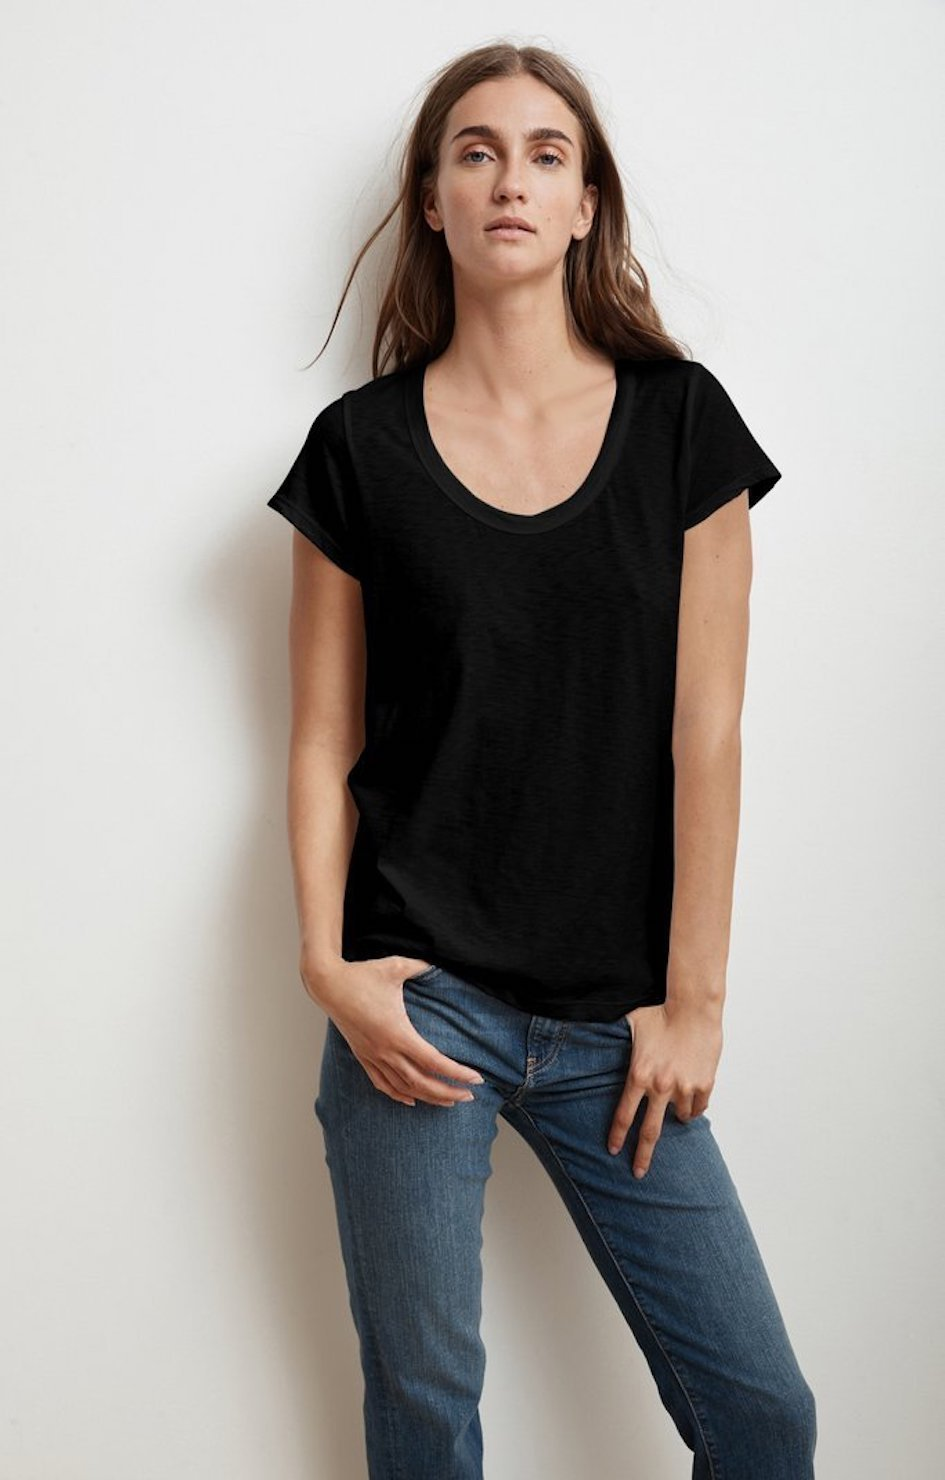 Katie Scoop Neck Tee - Black